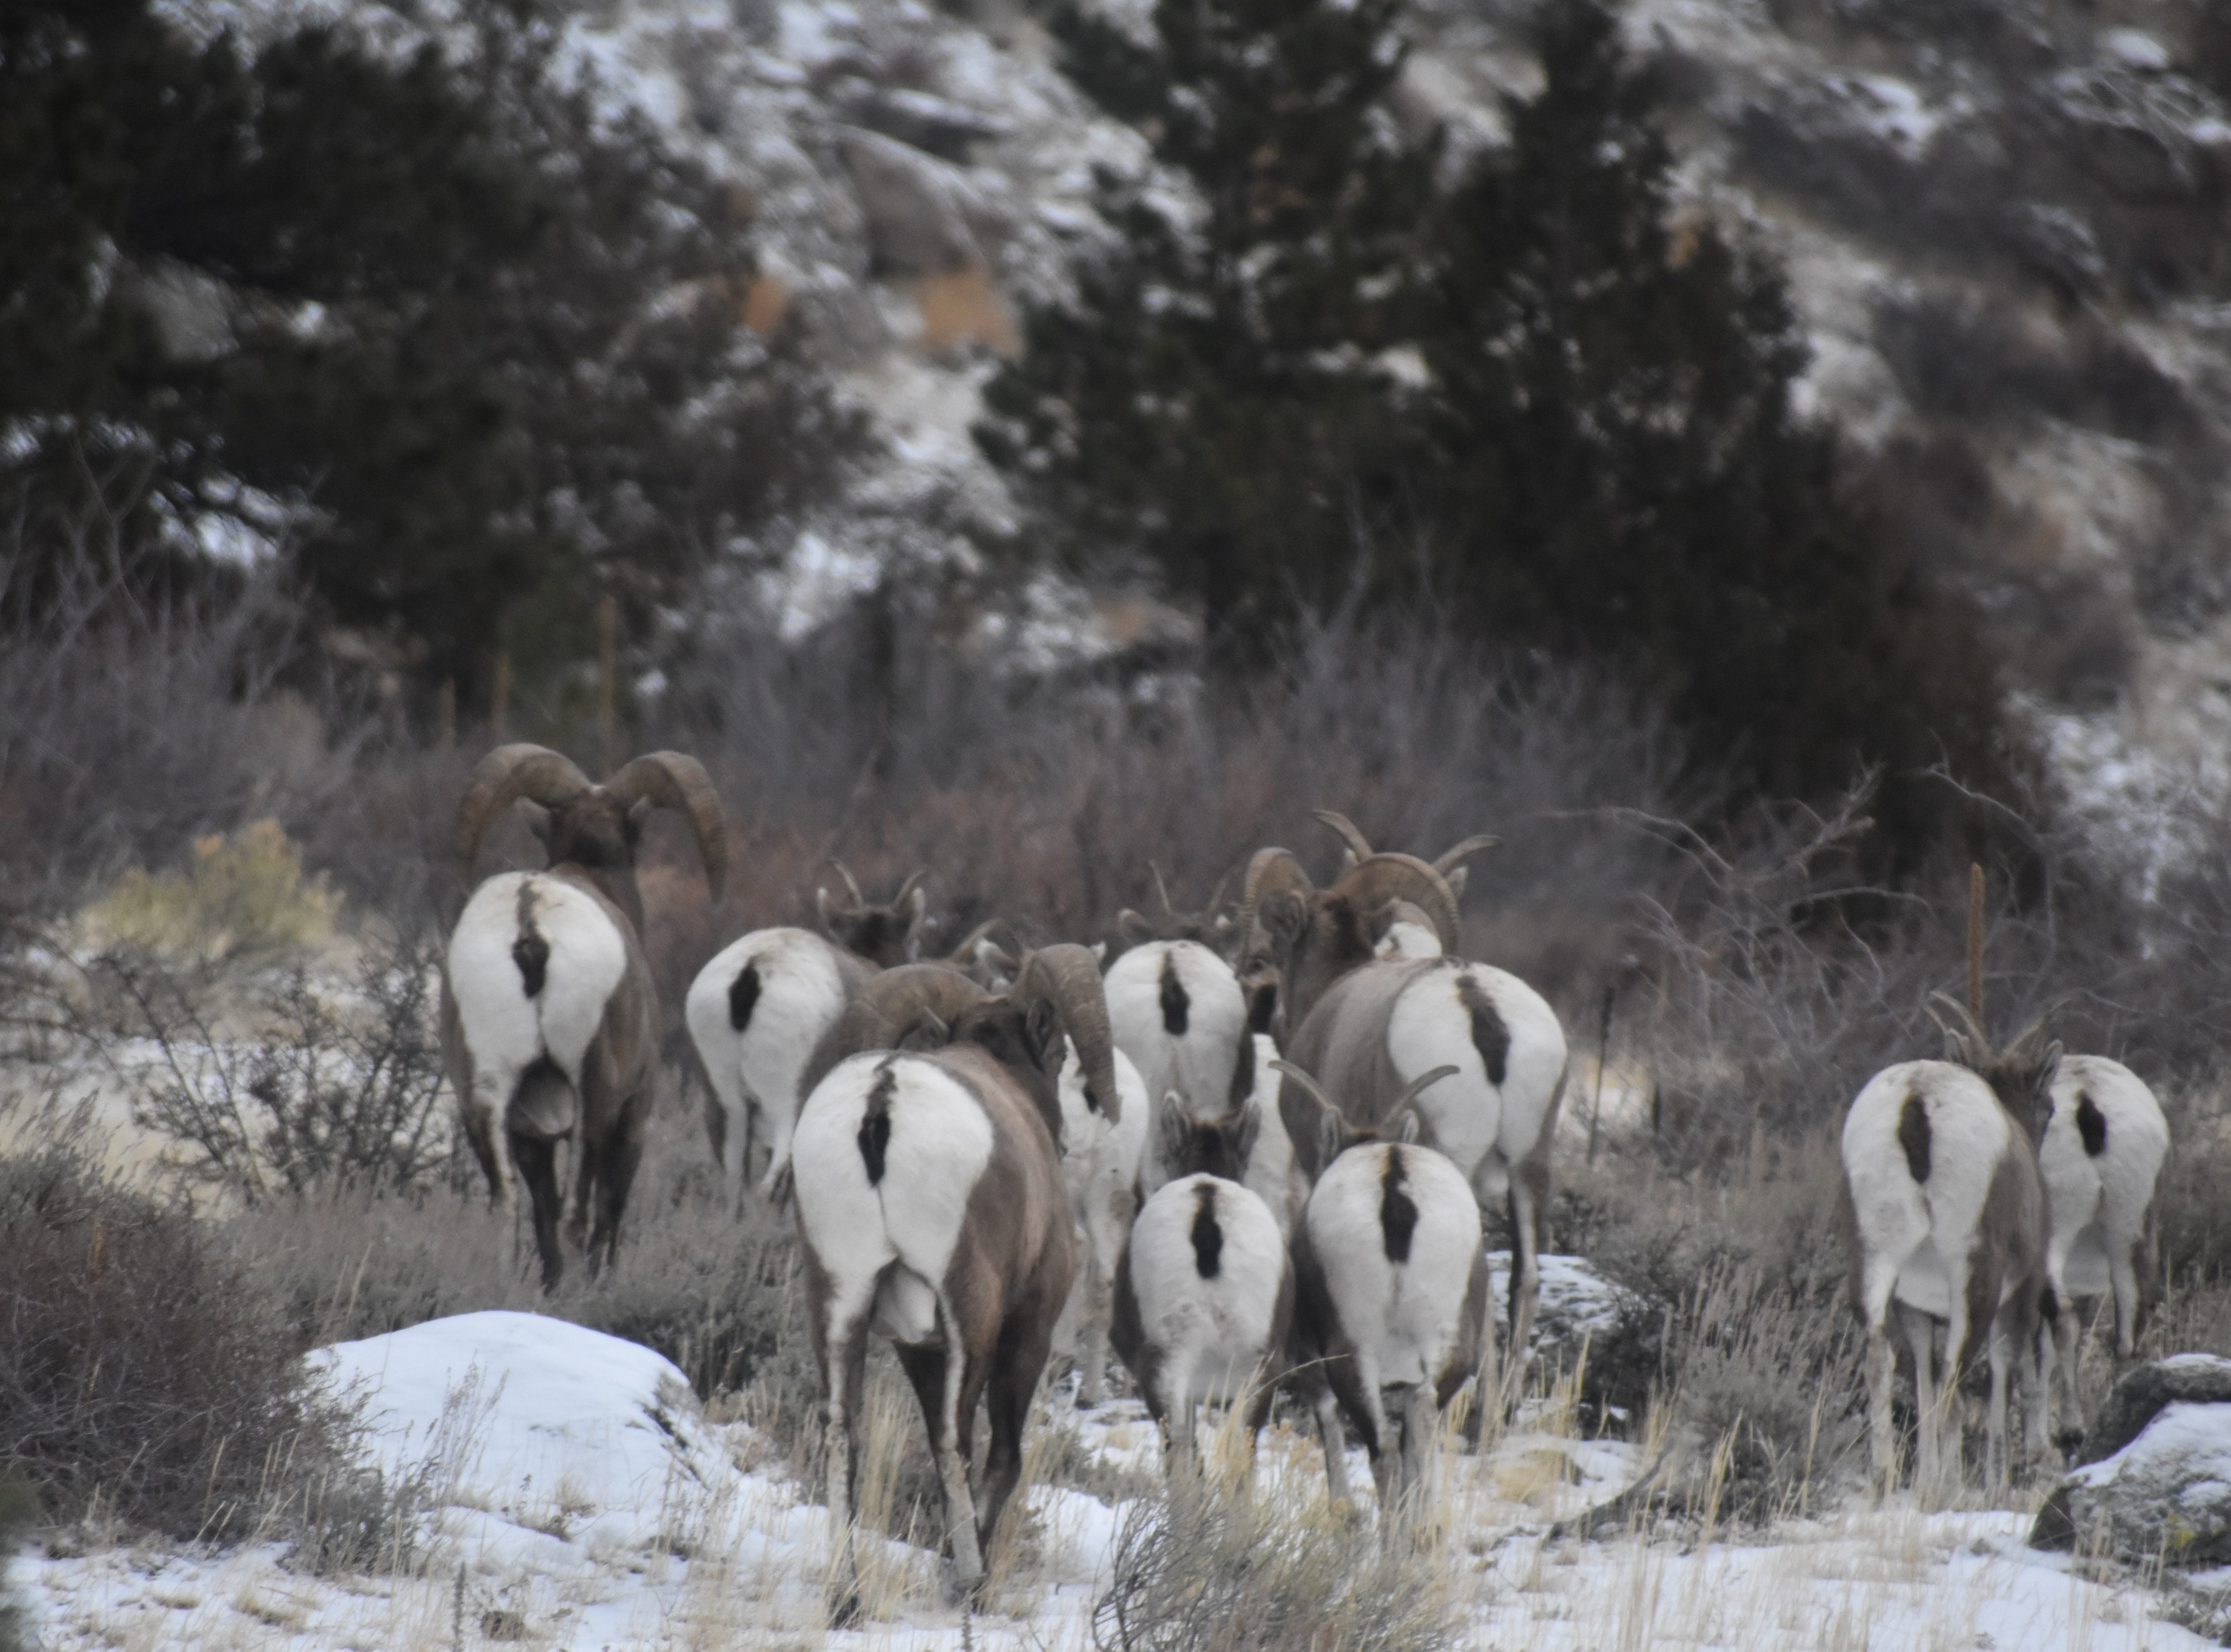 When looking for hard-to-see bighorn sheep on hillsides, look for white butts, which can be easier to see than the body color, which blends in with the rocks and dried grasses.